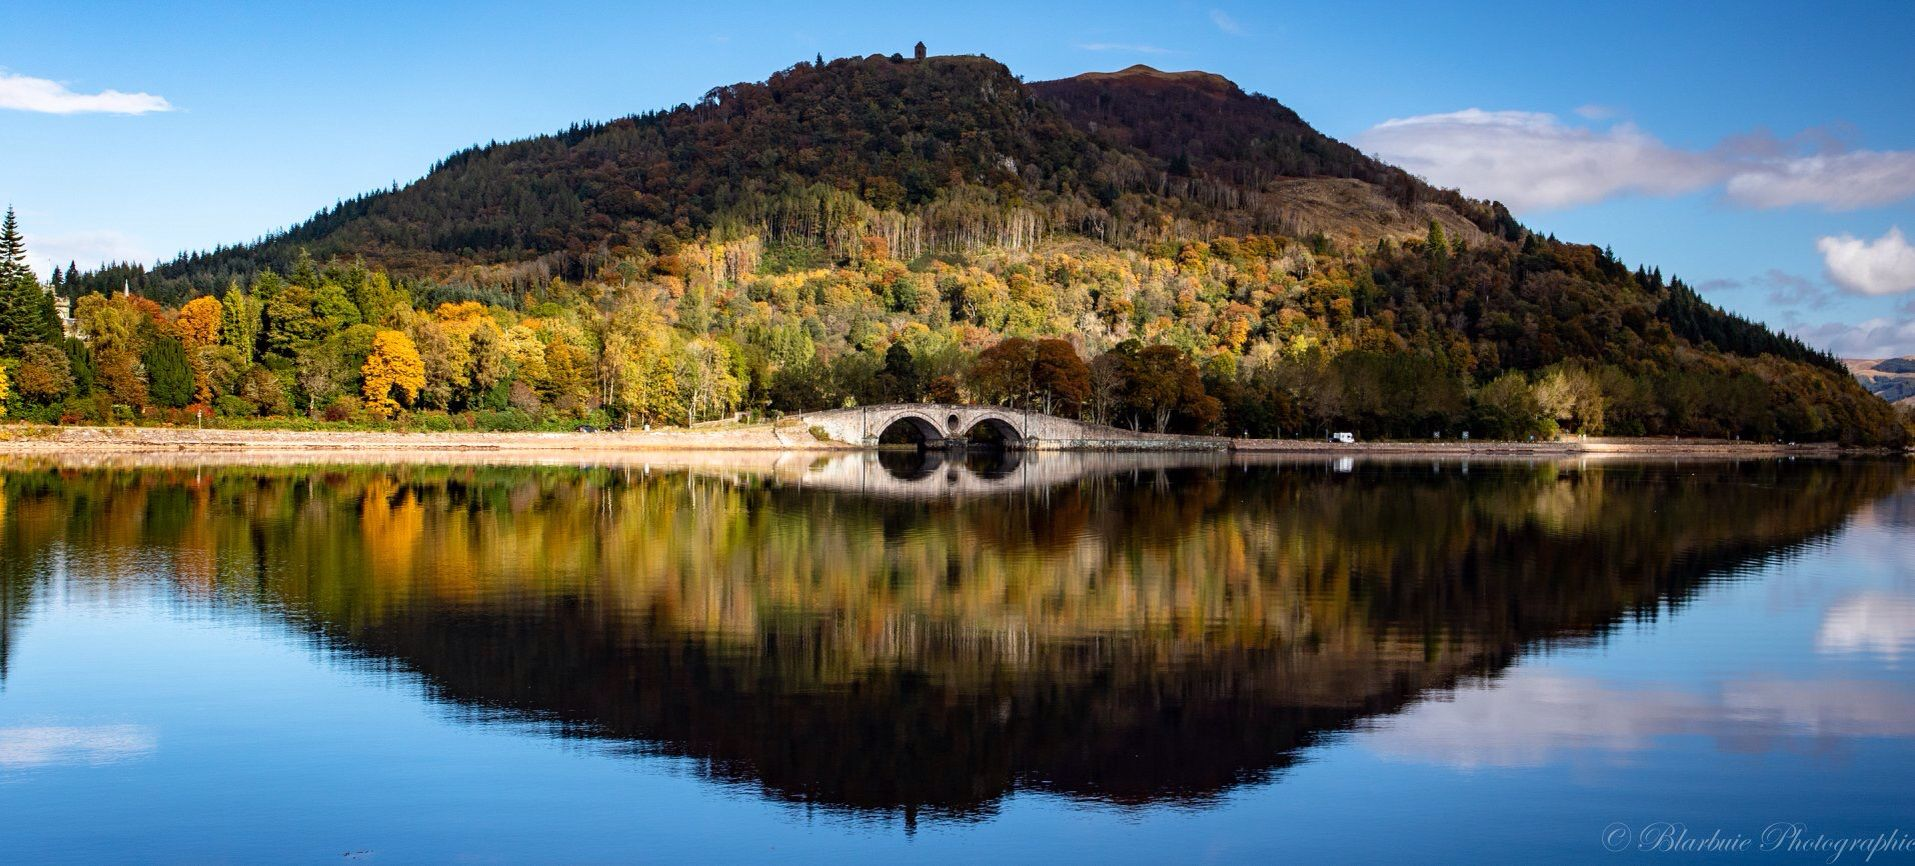 Pin by David Innis on Inveraray Area Outdoor, Water, River